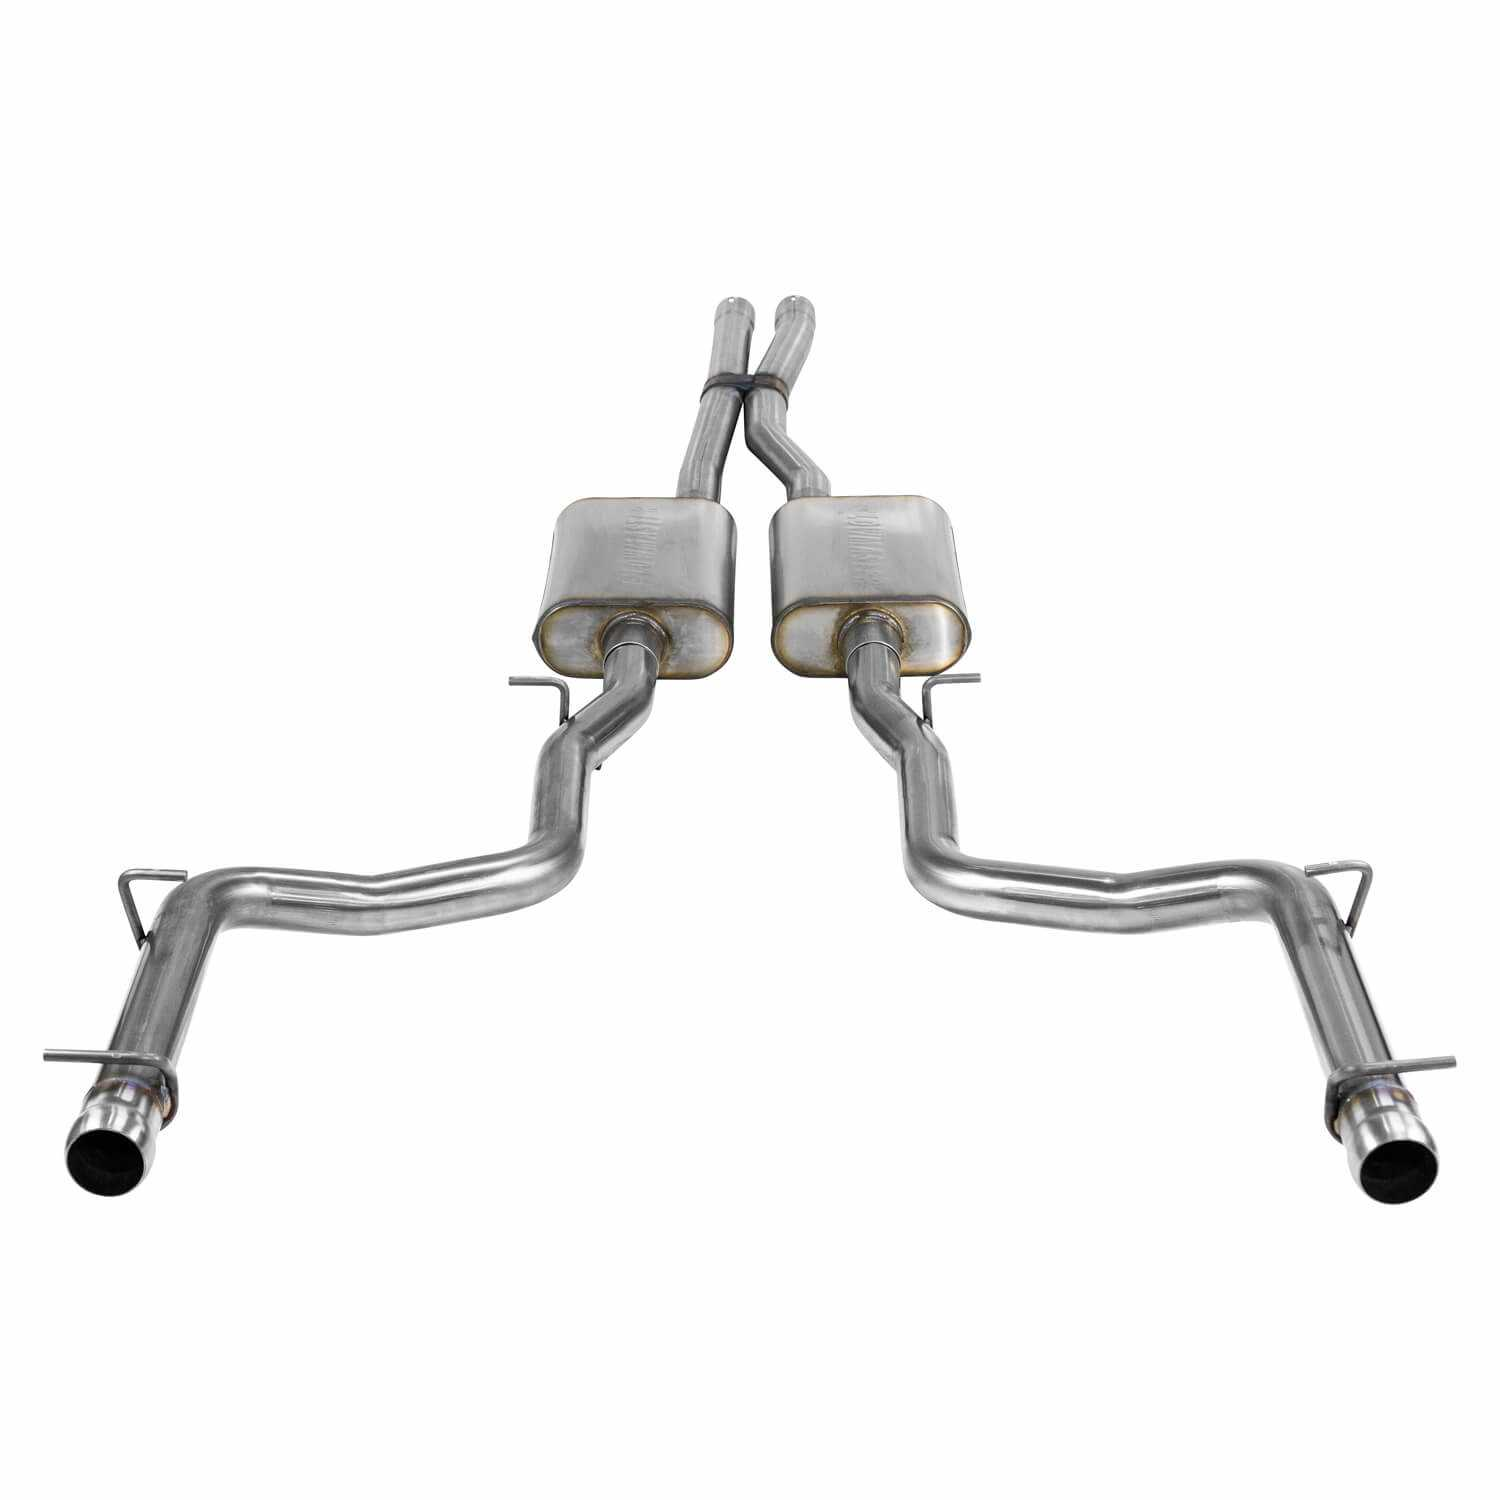 717830 Flowmaster FlowFX Cat-Back Exhaust System